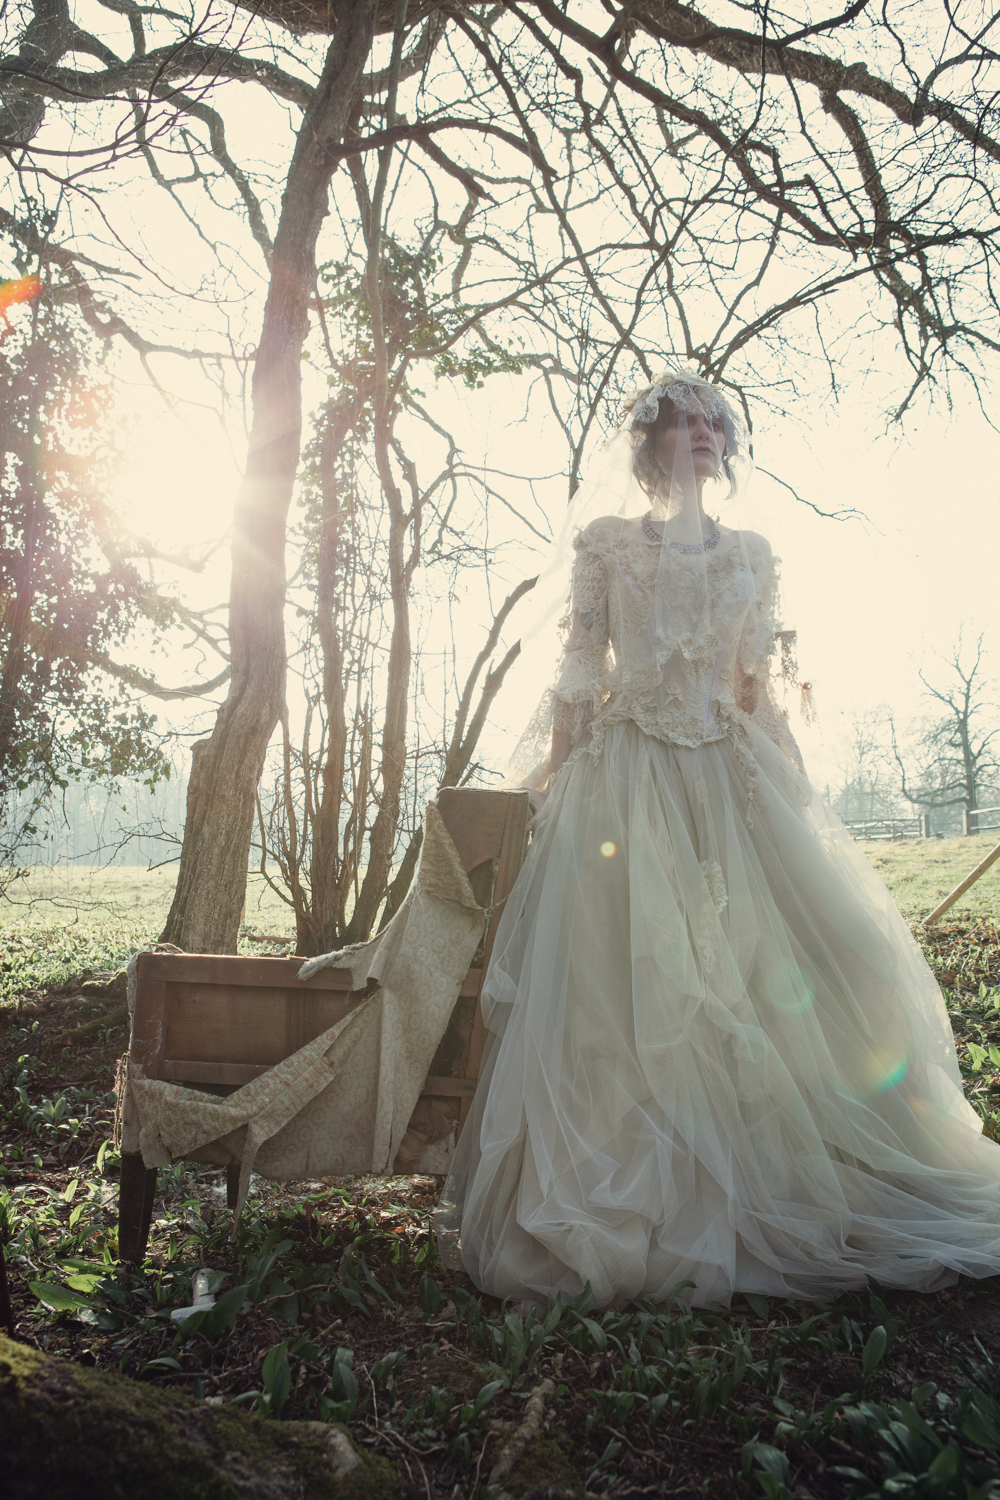 A haunting decaying Miss Havisham shoot photographed by Assassynation  The Couture Company